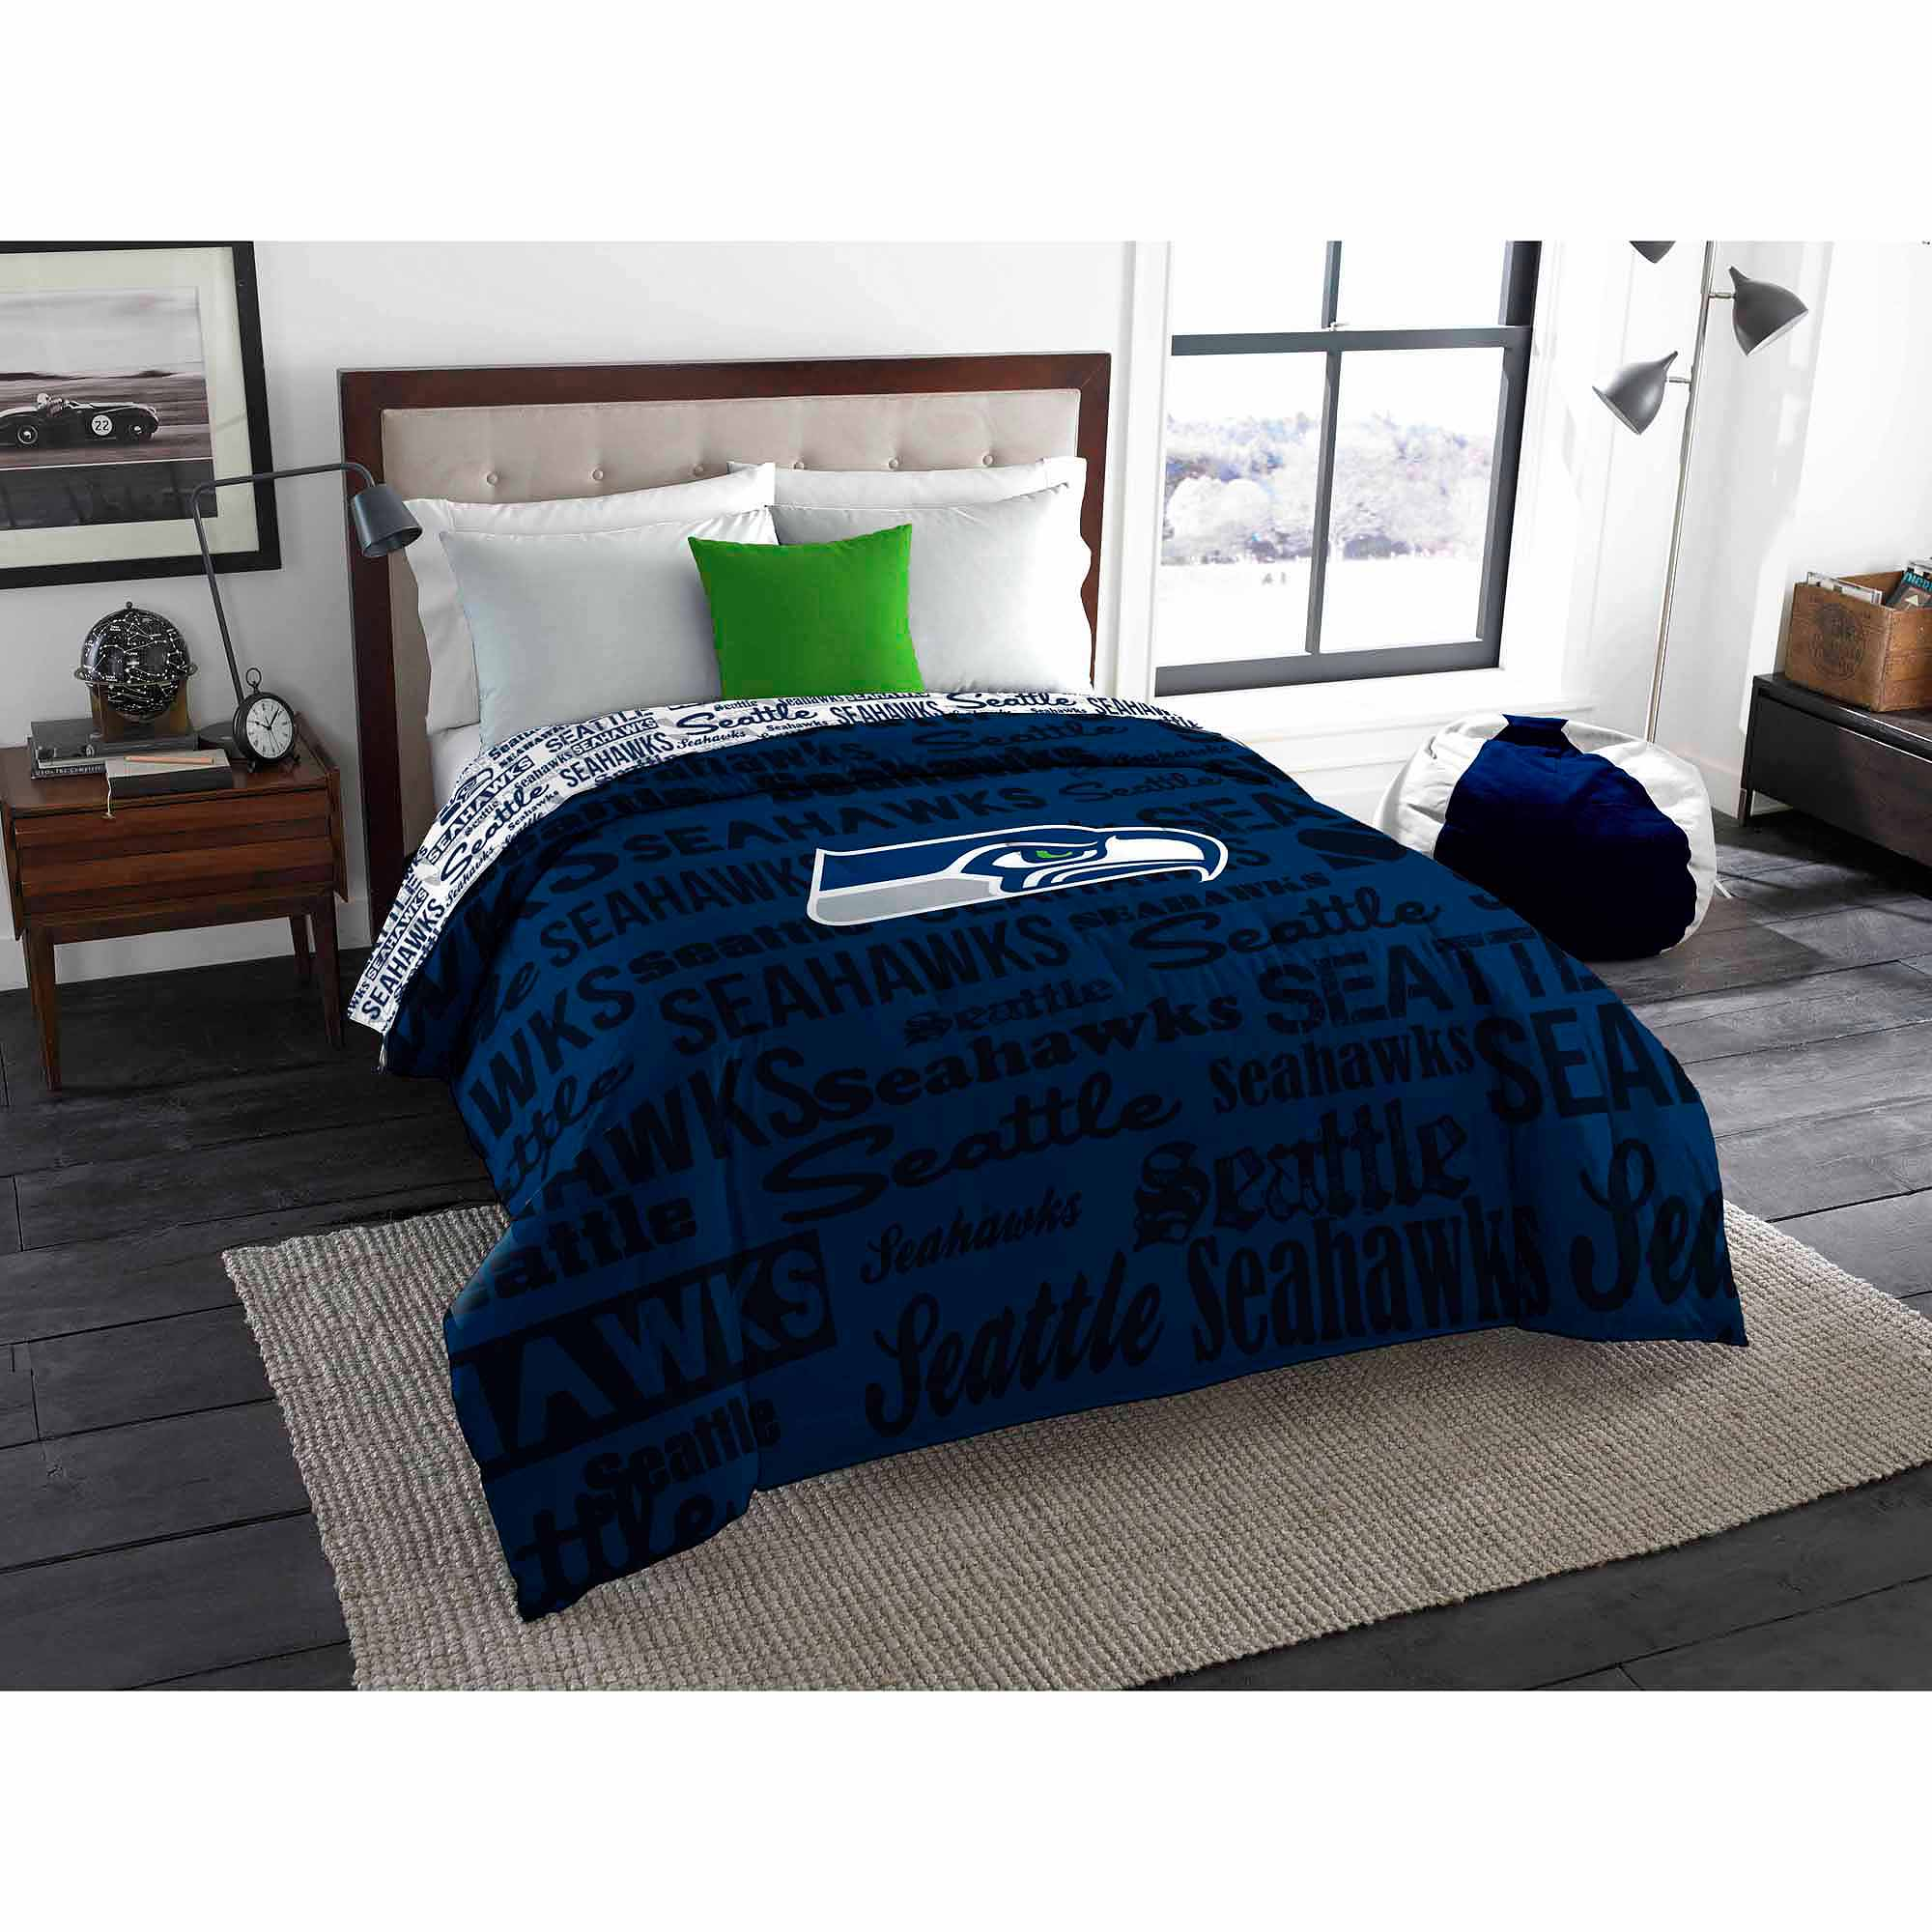 NFL Seattle Seahawks Twin/Full Bedding Comforter